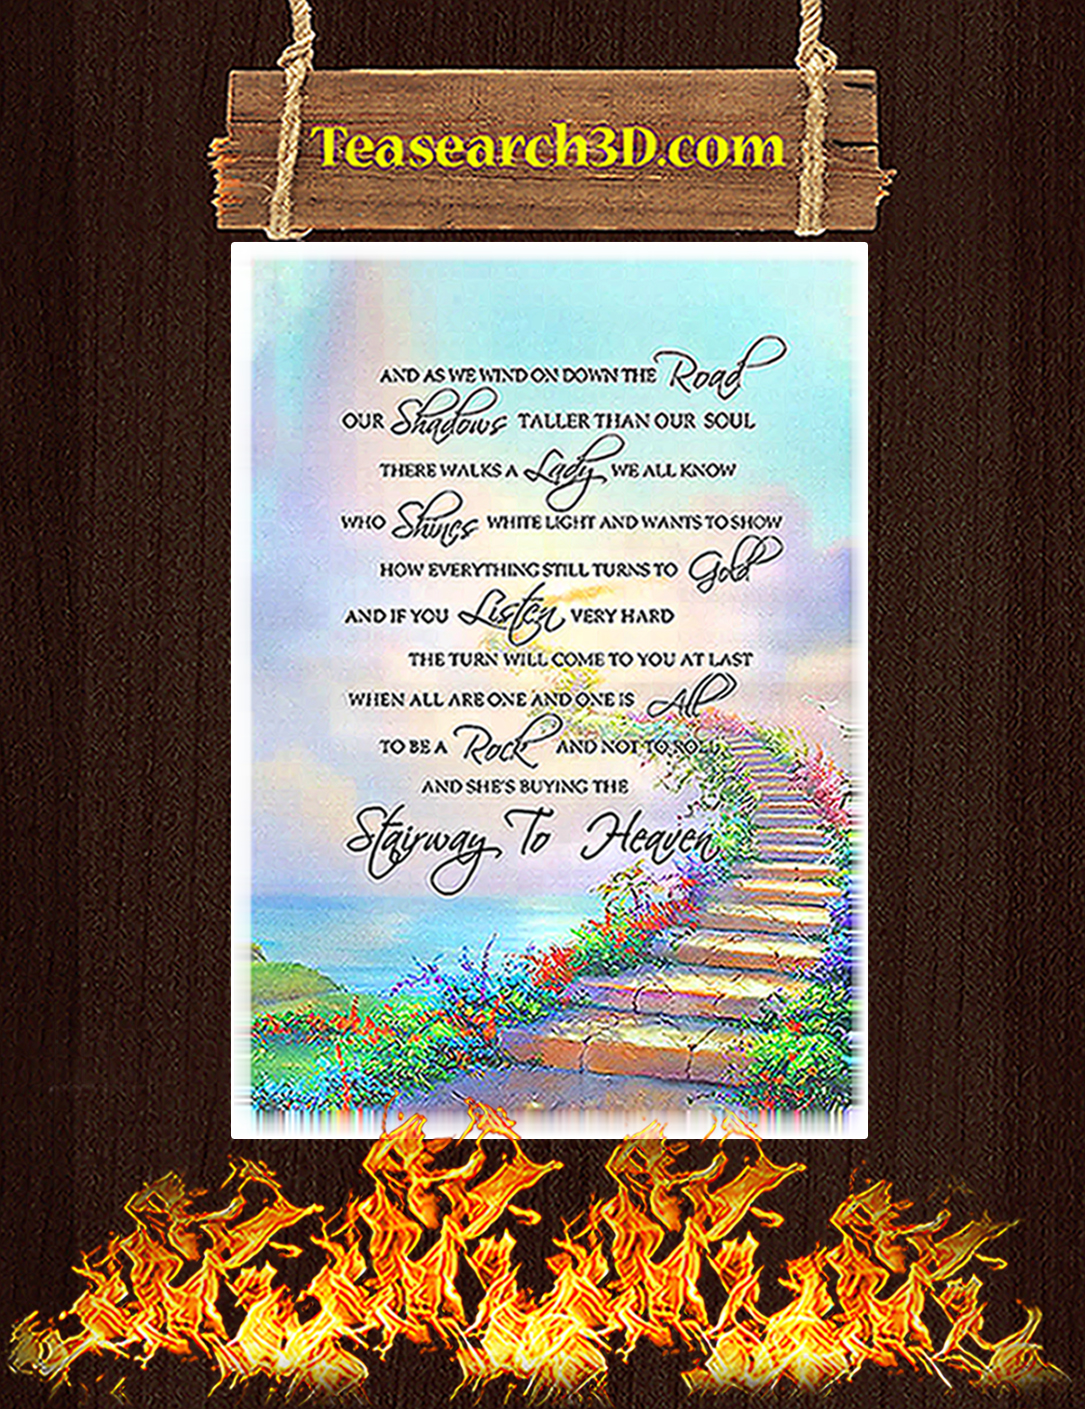 And as we wind on down the road stairway to heaven poster A2